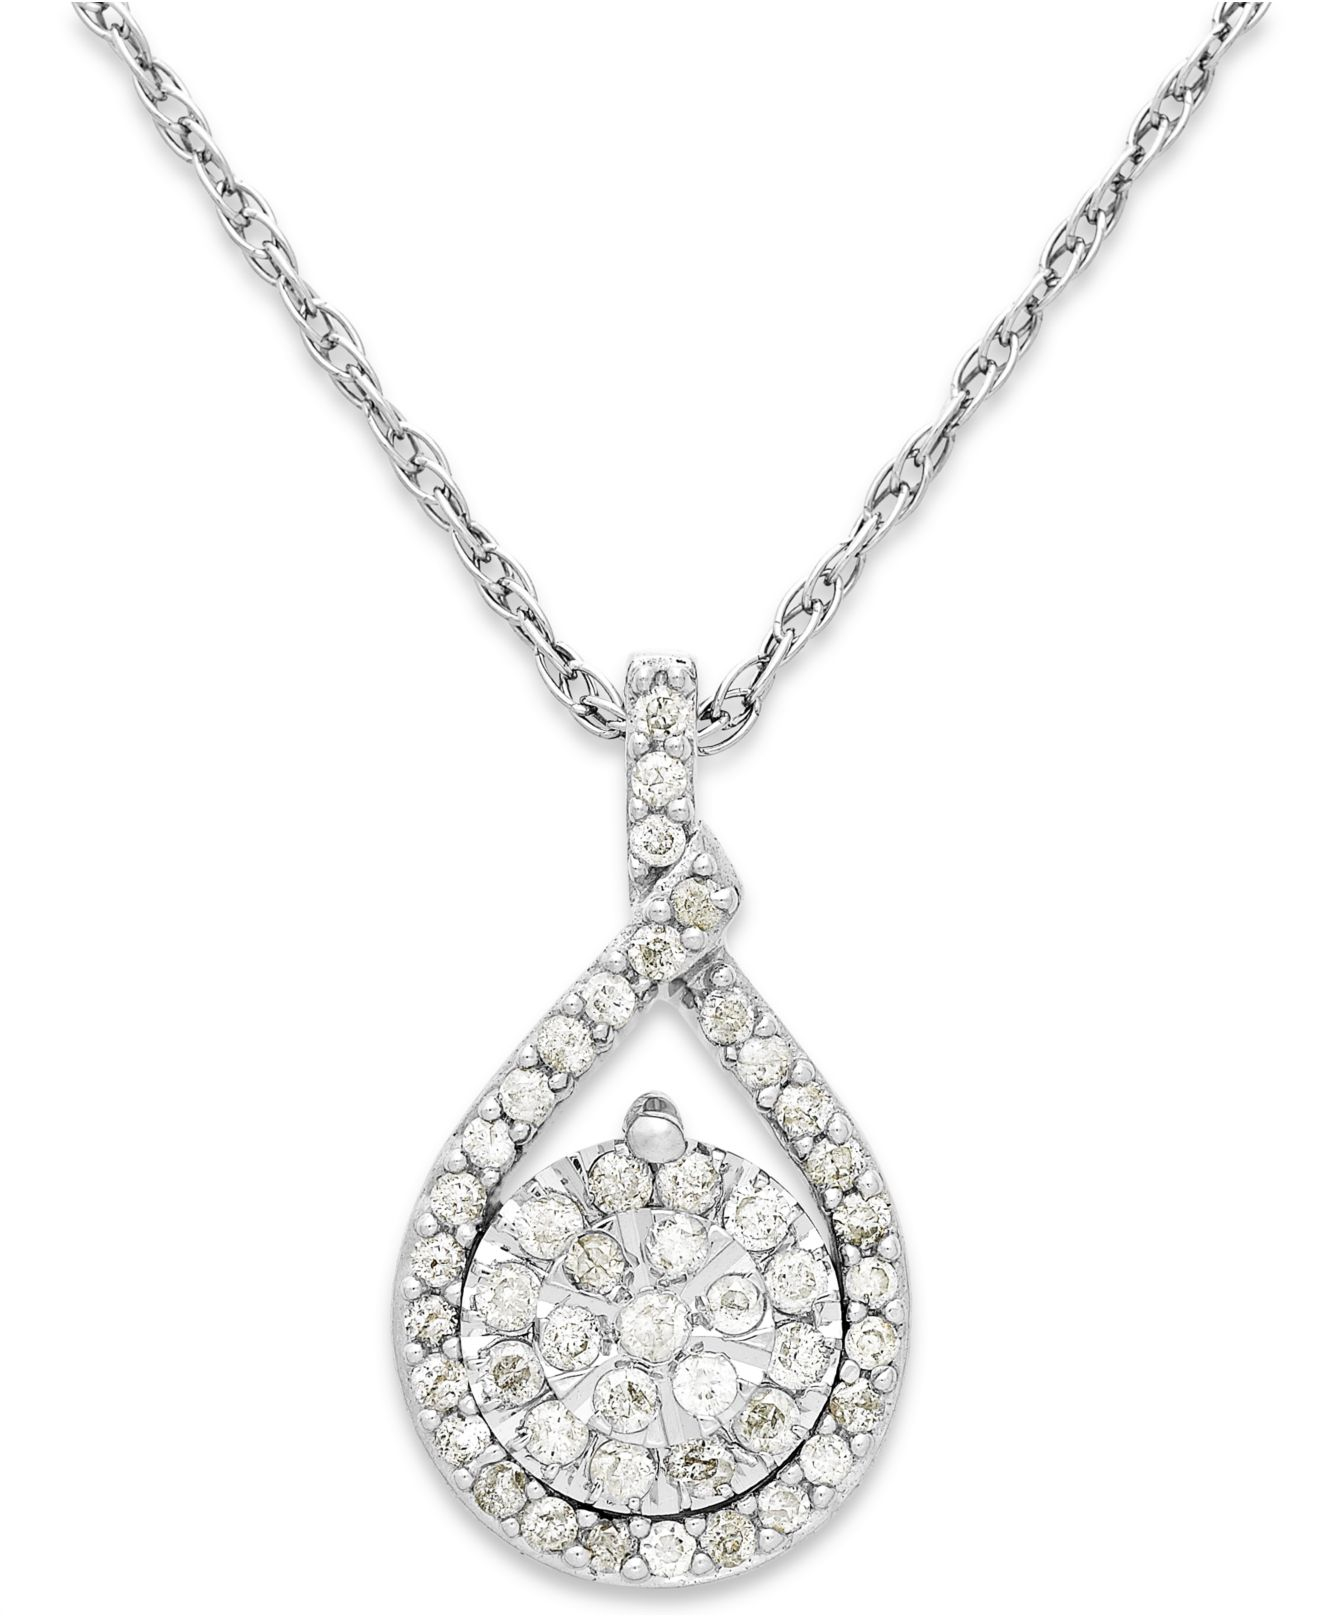 macys jewelry macy s cluster pendant necklace in sterling silver 6063